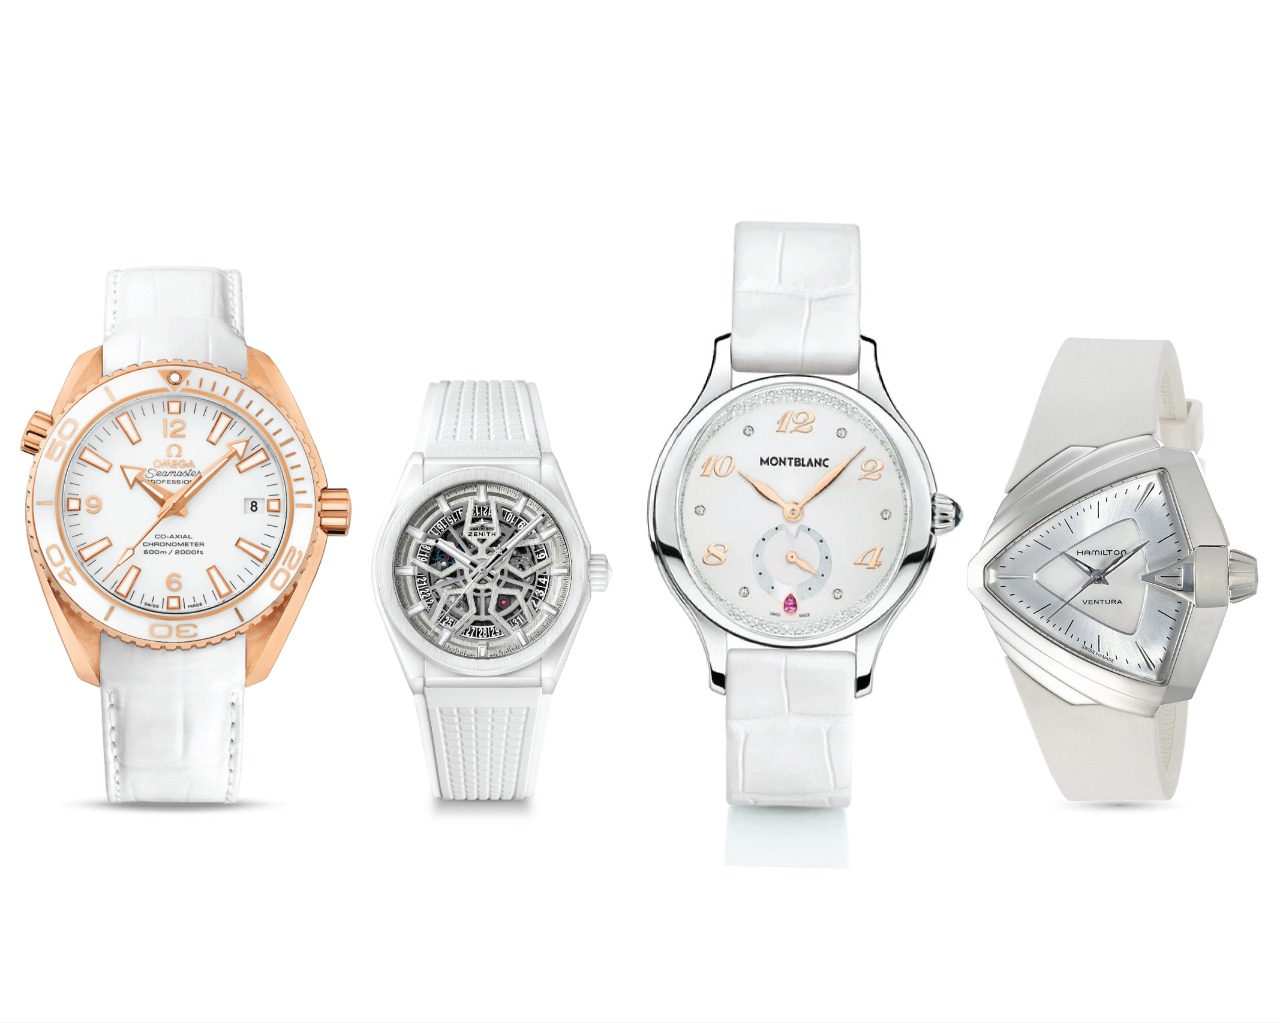 Top 14 Hottest White Watches for Men and Women